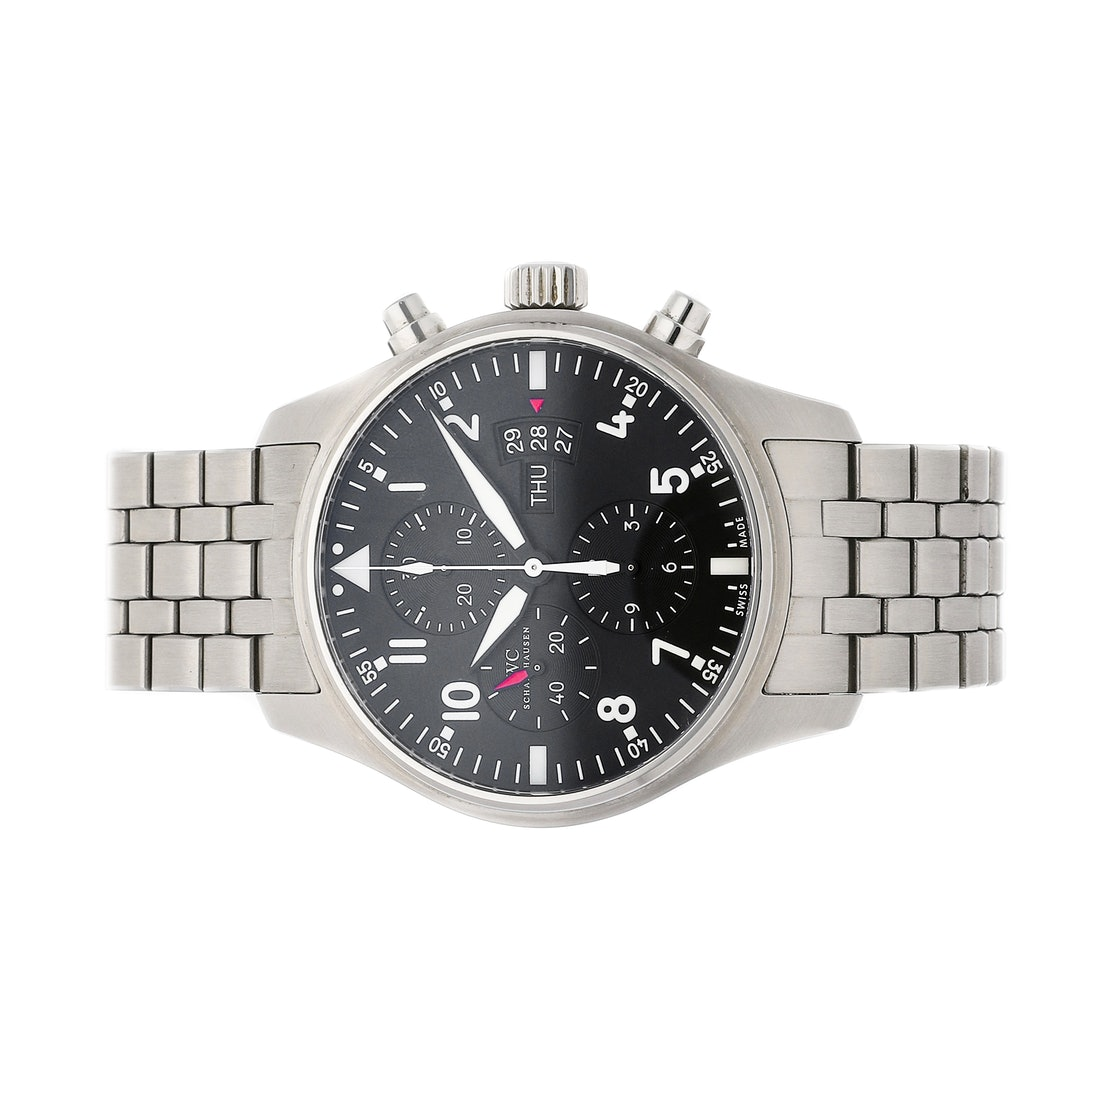 IWC Pilot's Watch Chronograph IW3777-04